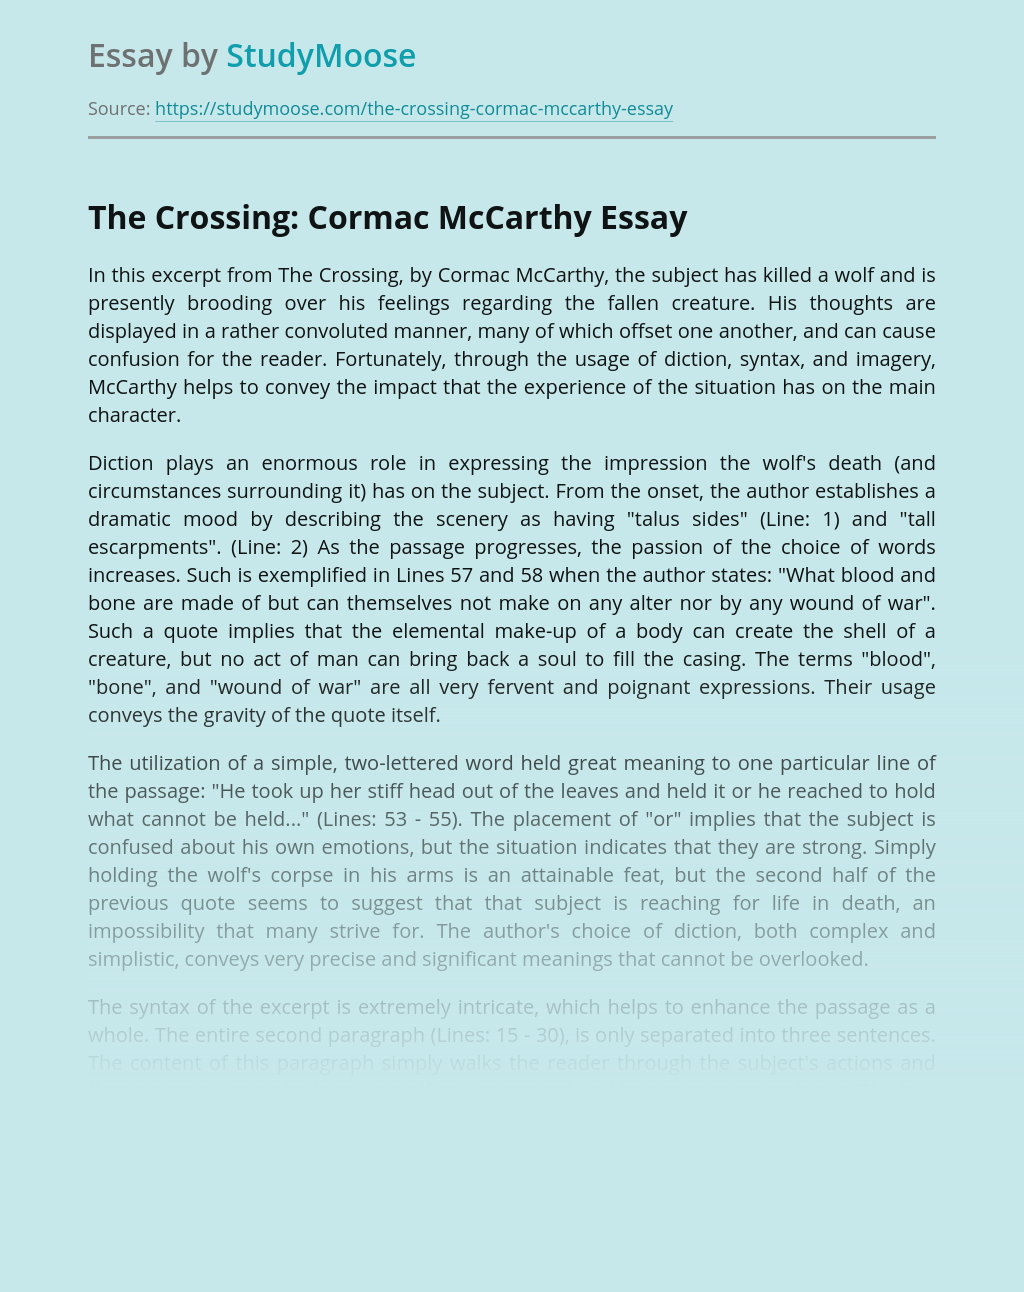 The Crossing: Cormac McCarthy